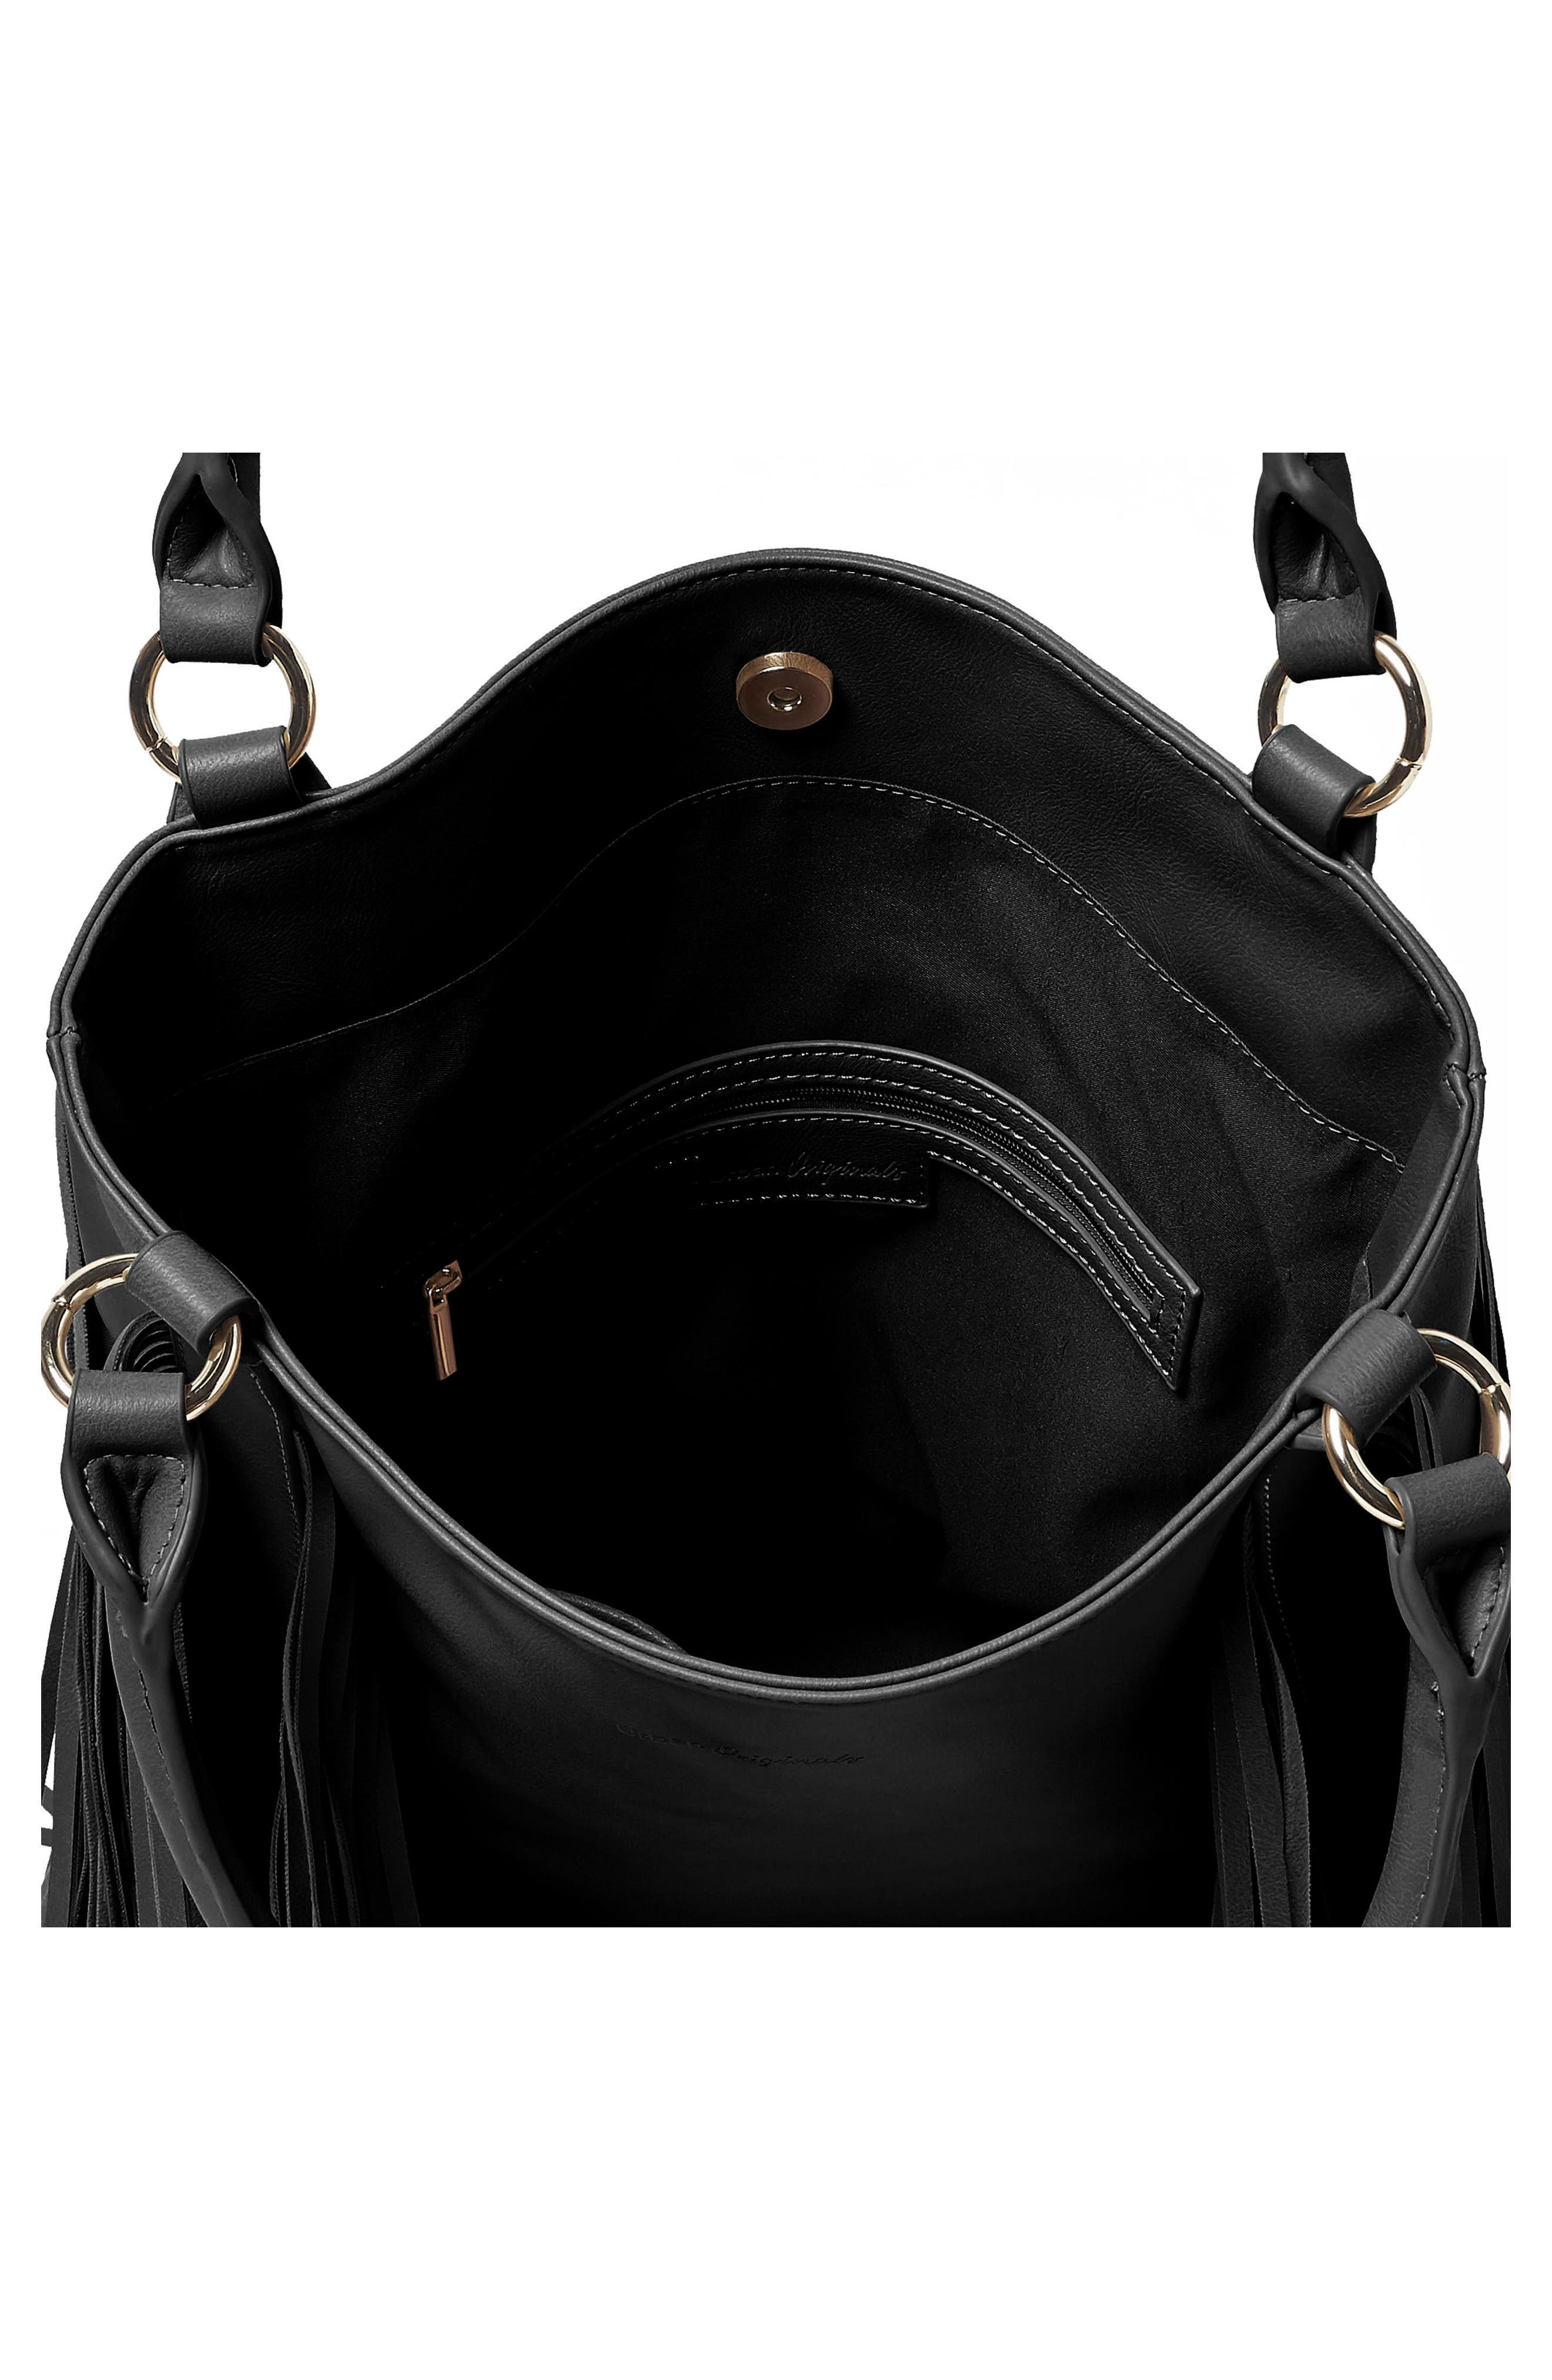 Crazy Love Vegan Leather Tote,                             Alternate thumbnail 2, color,                             001